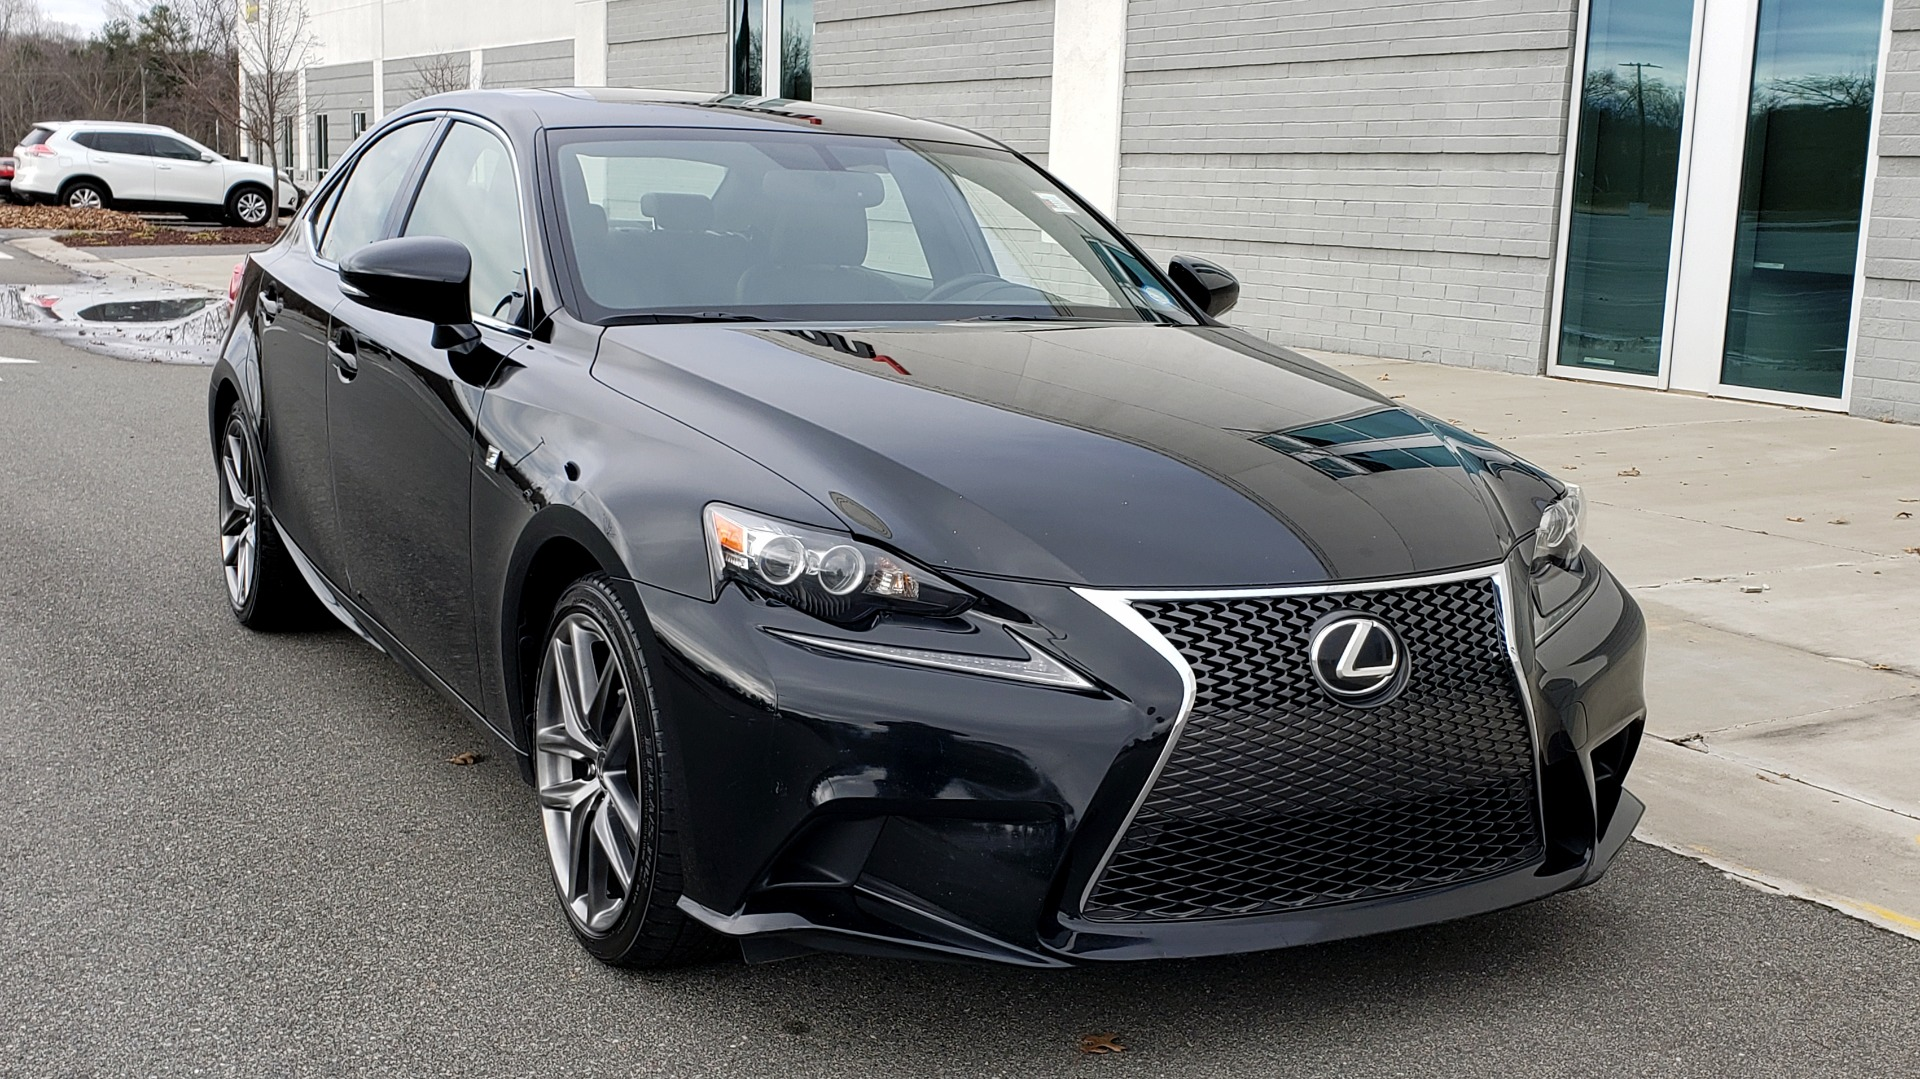 Used 2015 Lexus IS 250 F-SPORT / BLIND SPOT MON / SUNROOF / REARVIEW for sale Sold at Formula Imports in Charlotte NC 28227 4